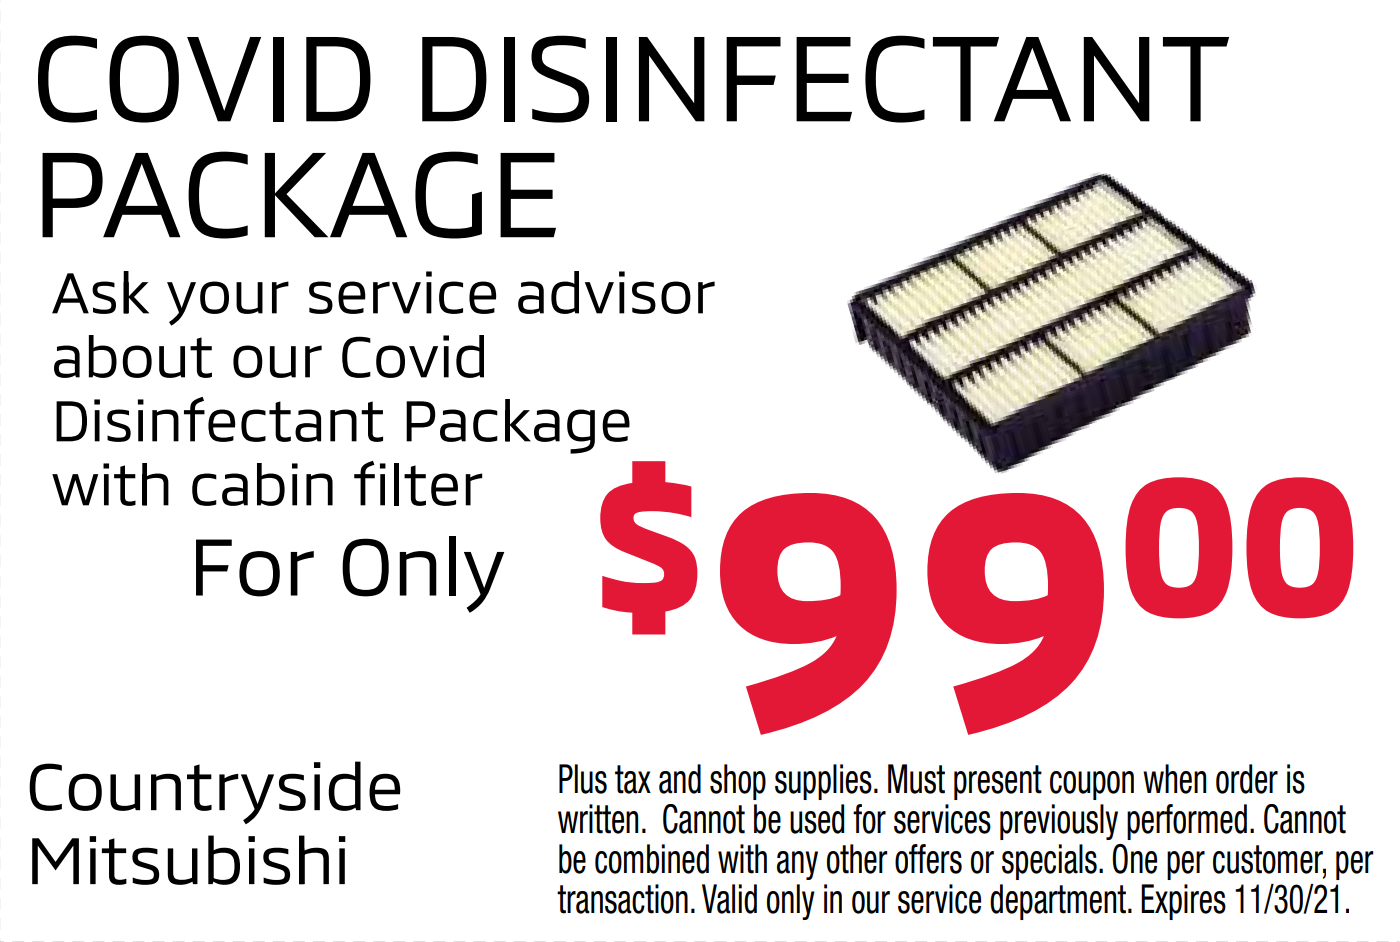 COVID disinfectant package with cabin air filter for only $99